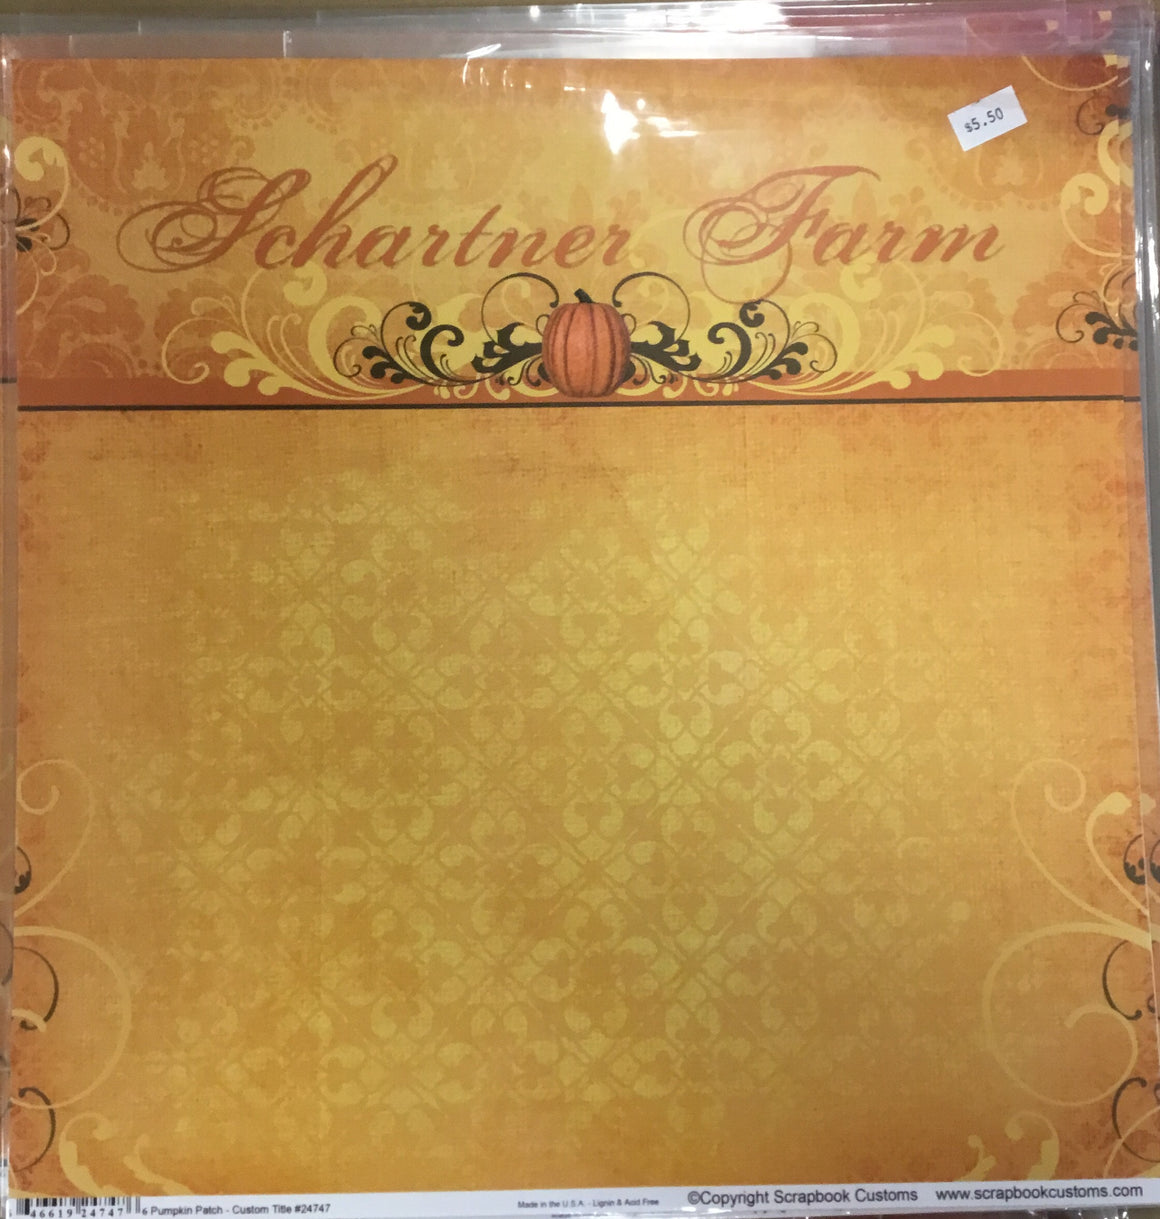 12x12 Schartner Farm kit w/ 1 custom paper, 1 companion paper, 1 custom sticker sheet